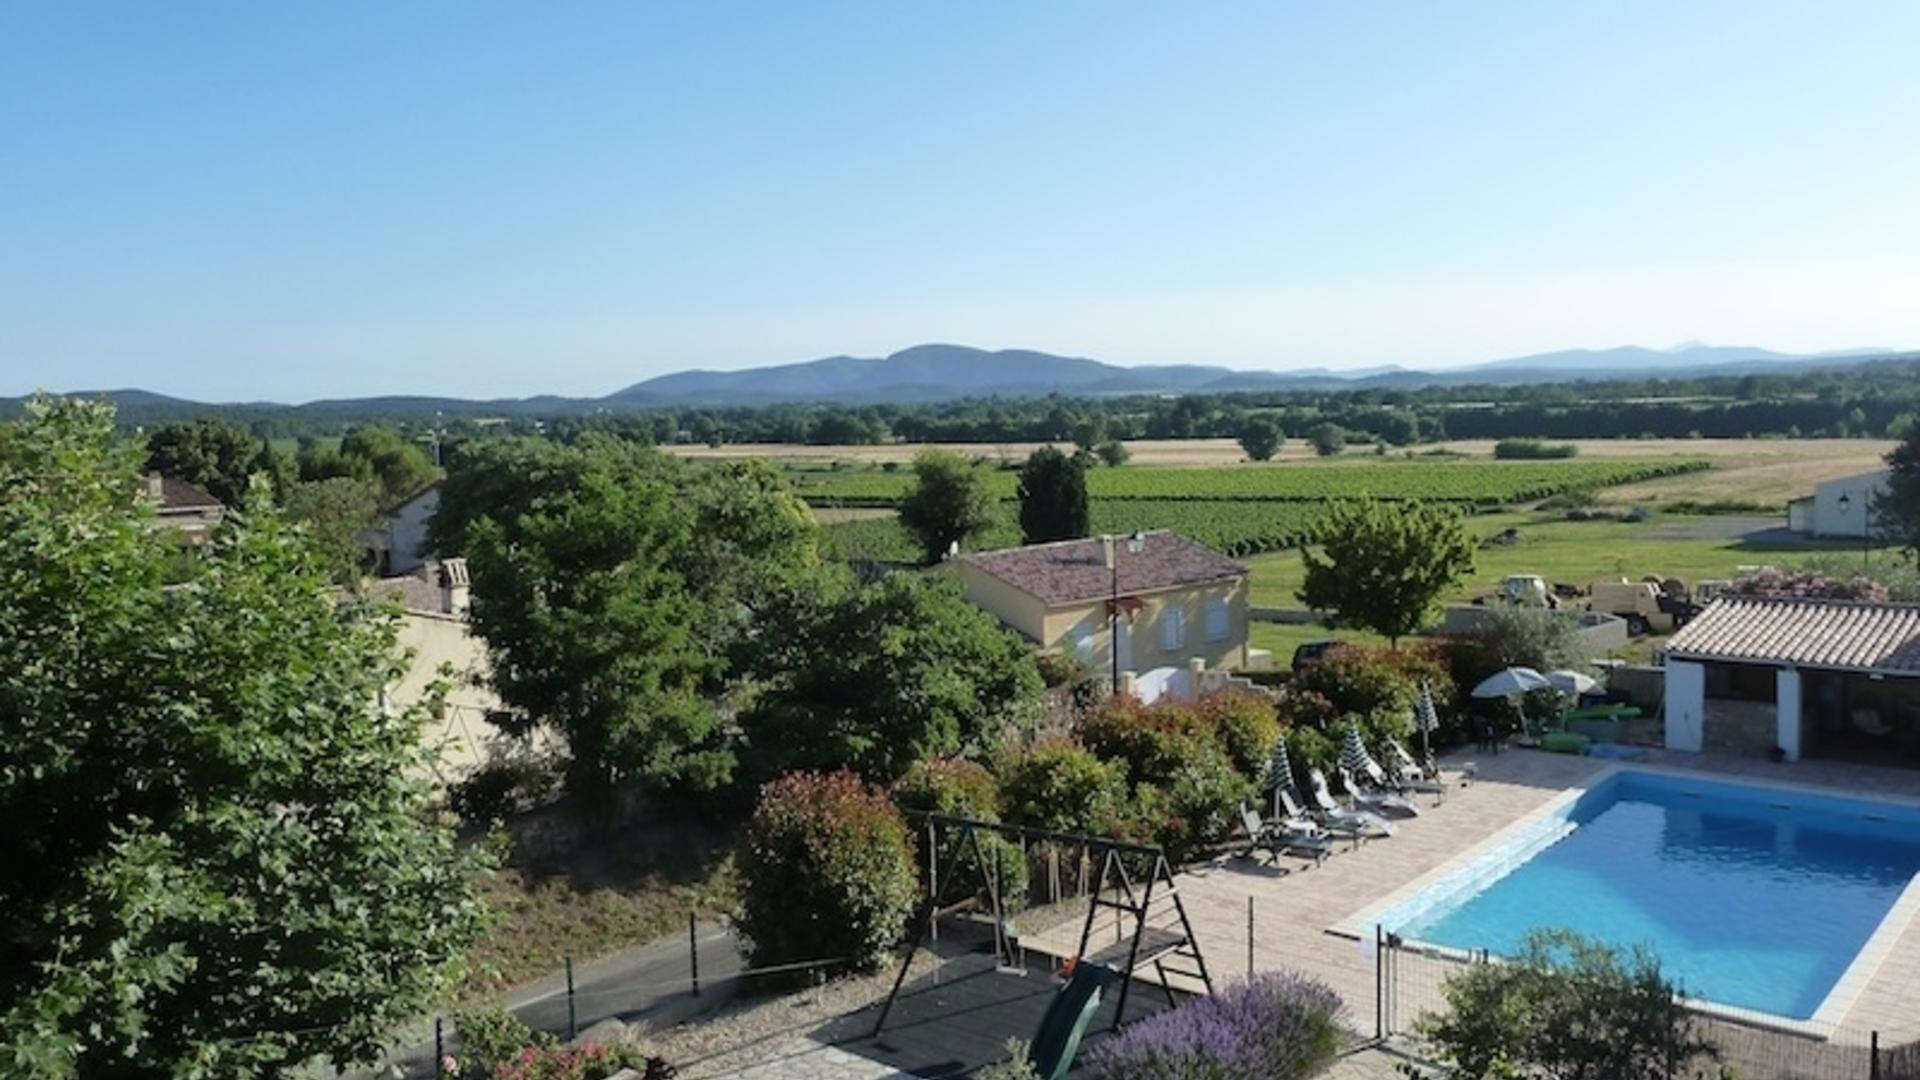 2 Bedroom Apartment in Languedoc-Roussillon, France